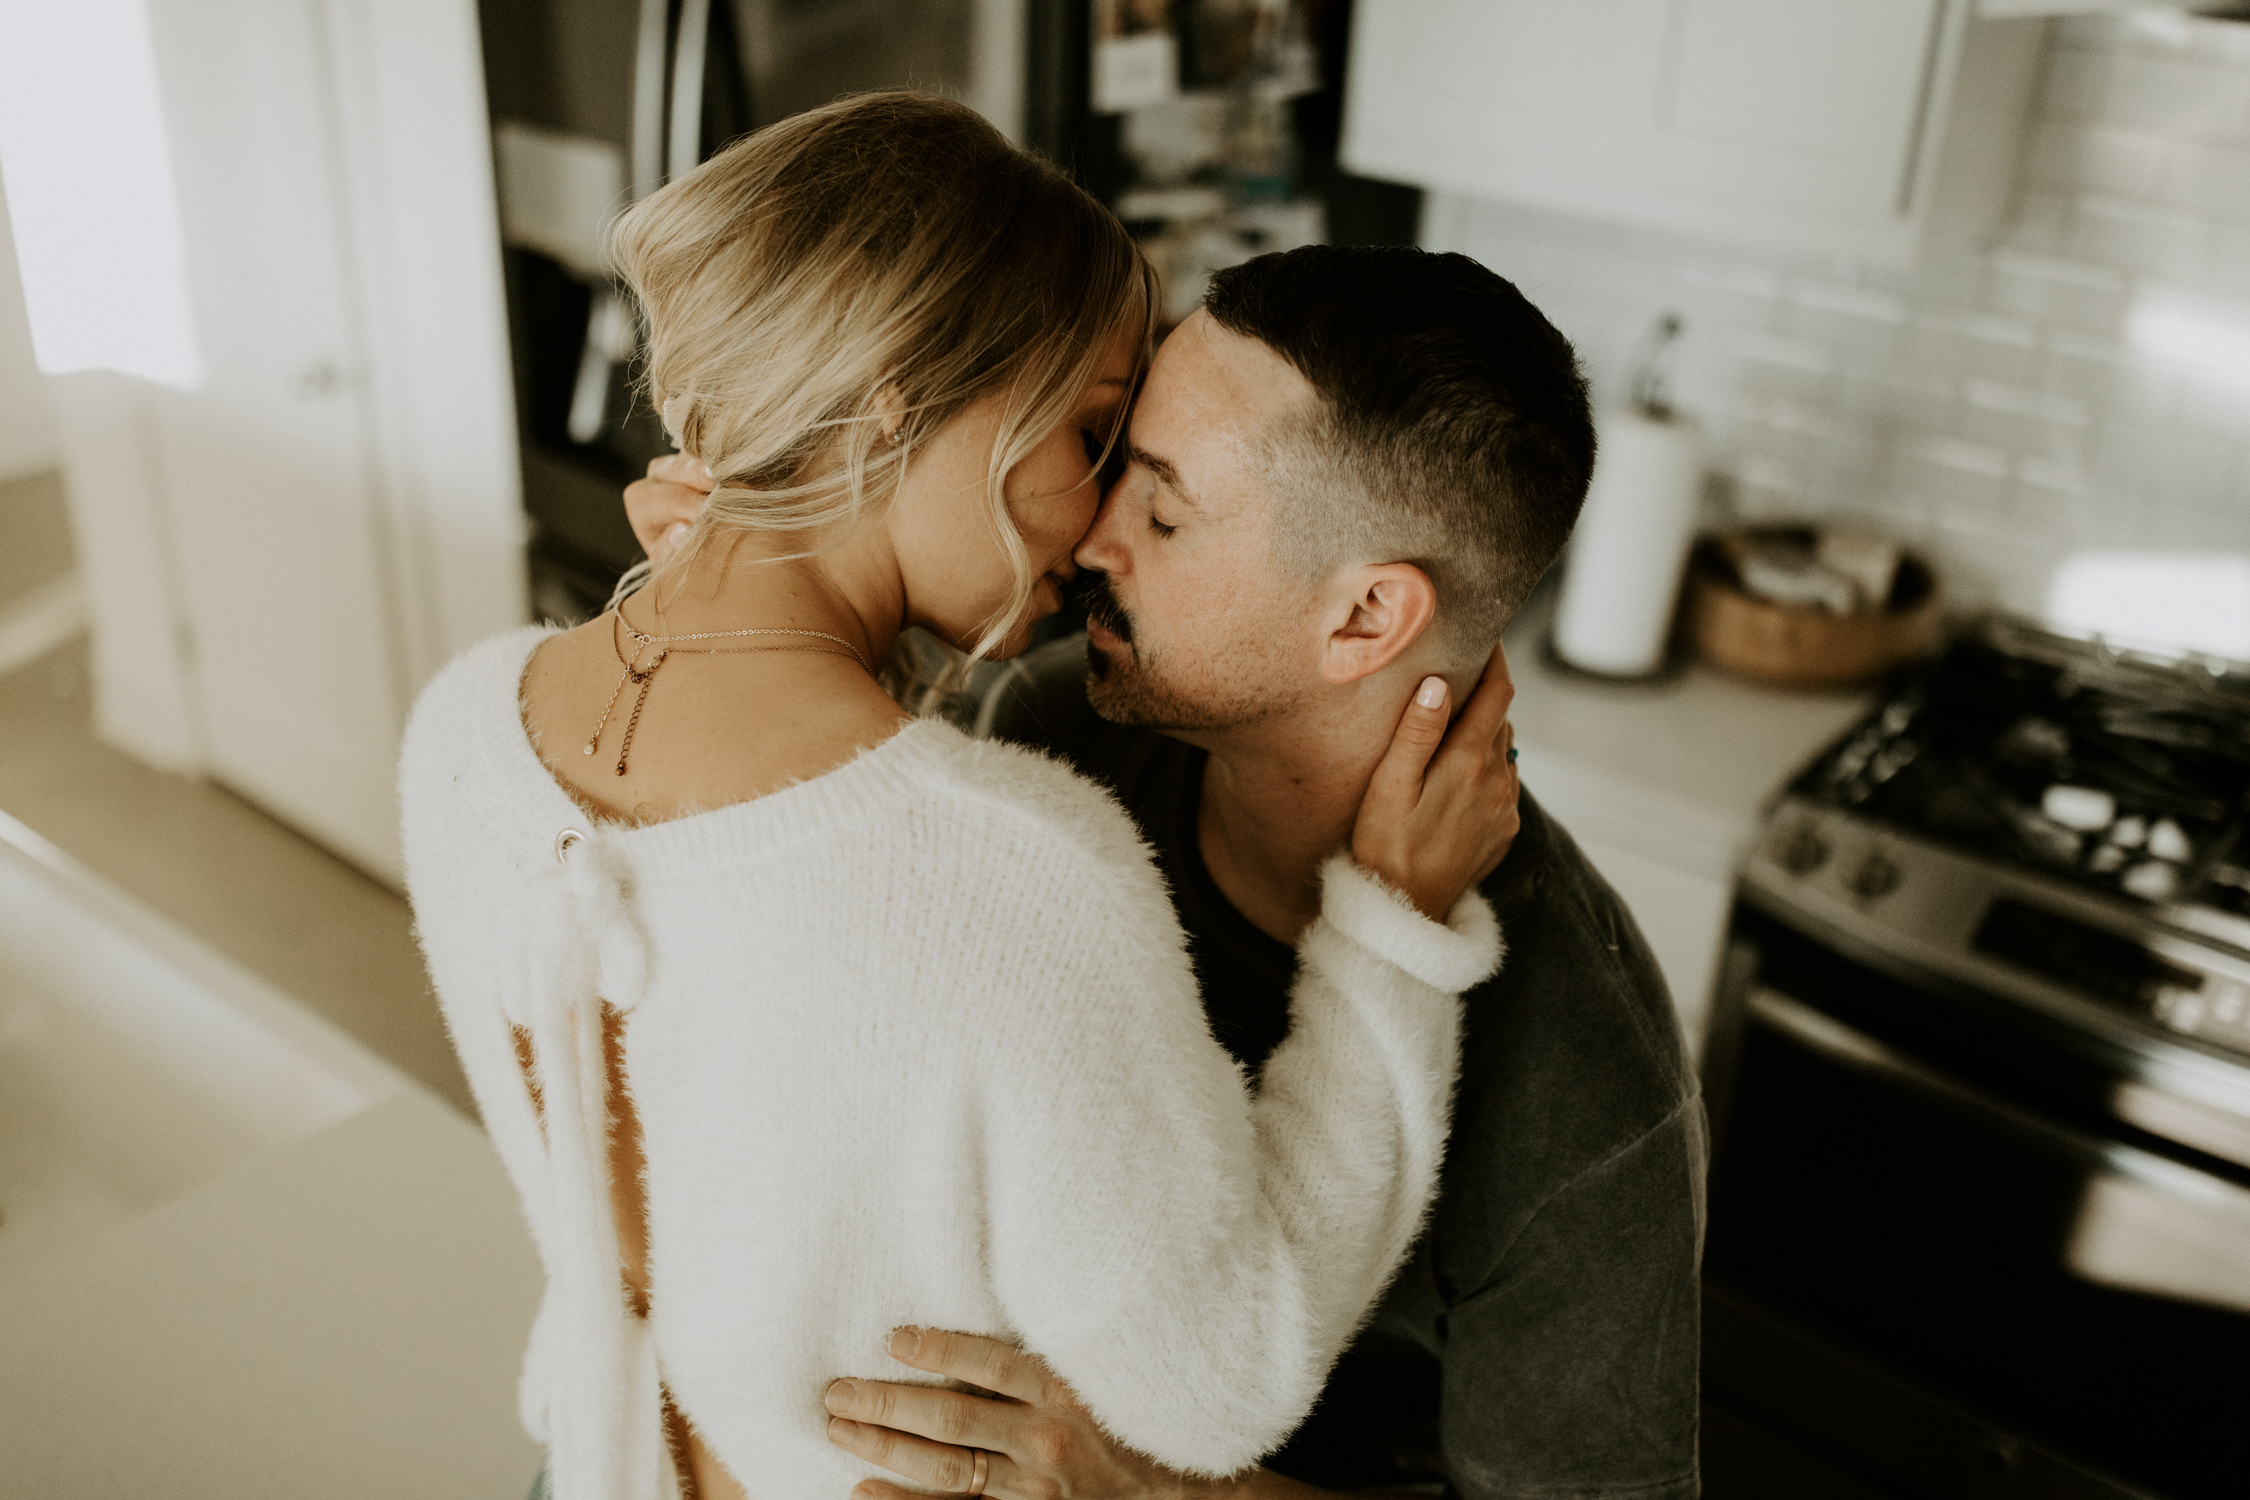 couple-intimate-in-home-session-northern-california-63.jpg